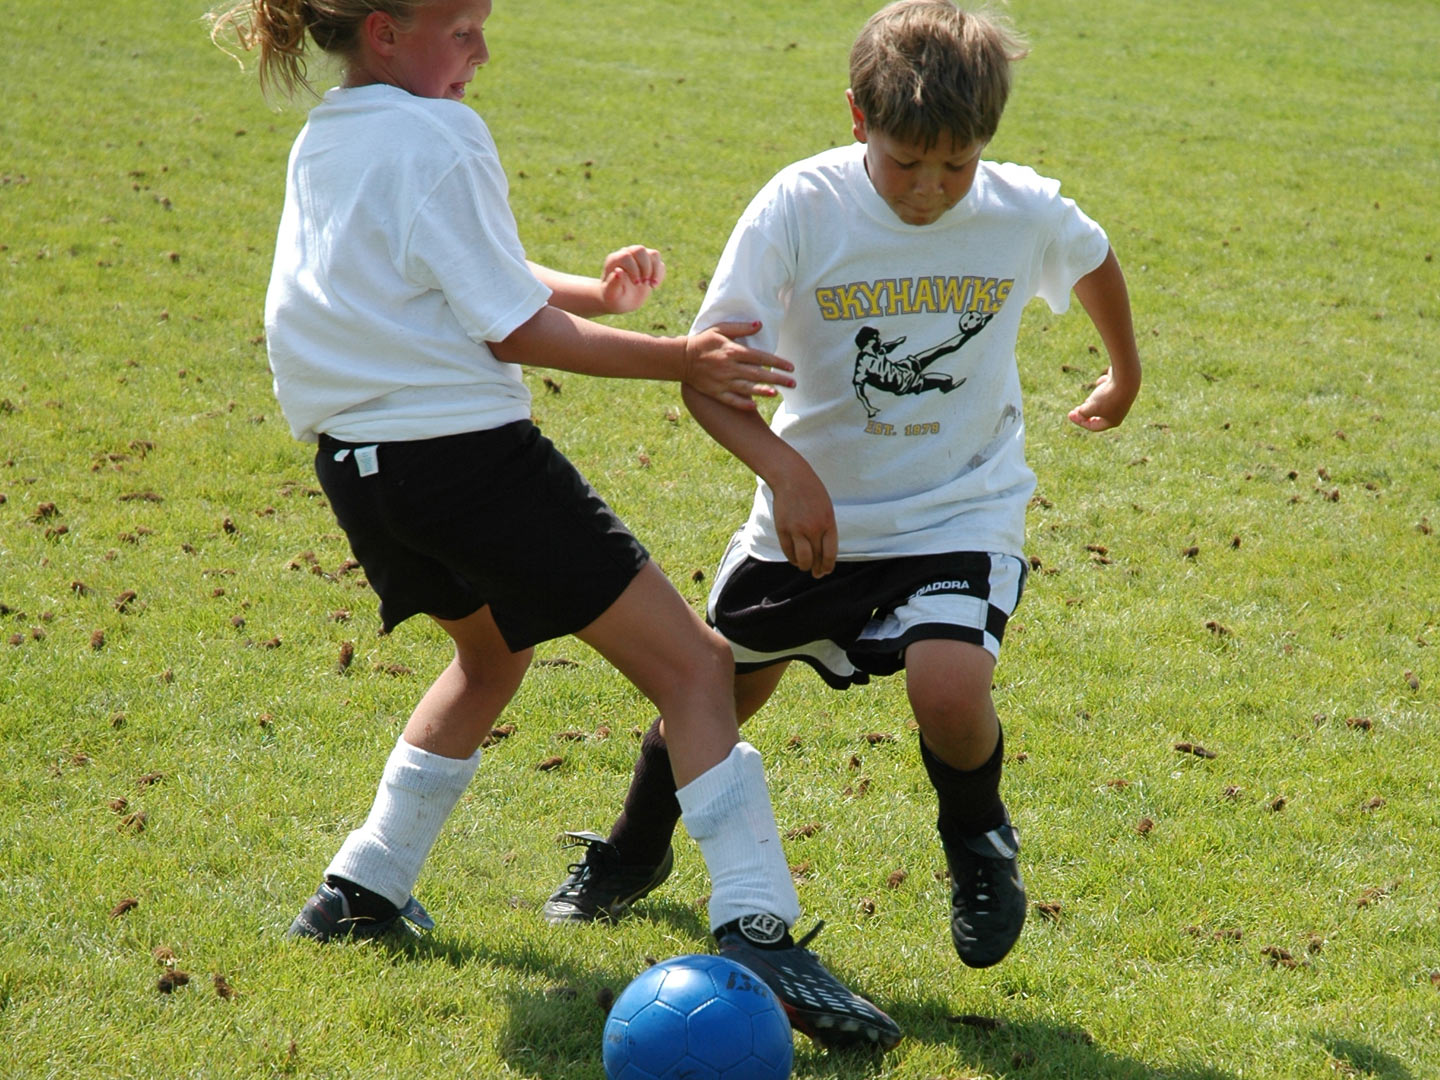 Boy and Girl Playing Soccer